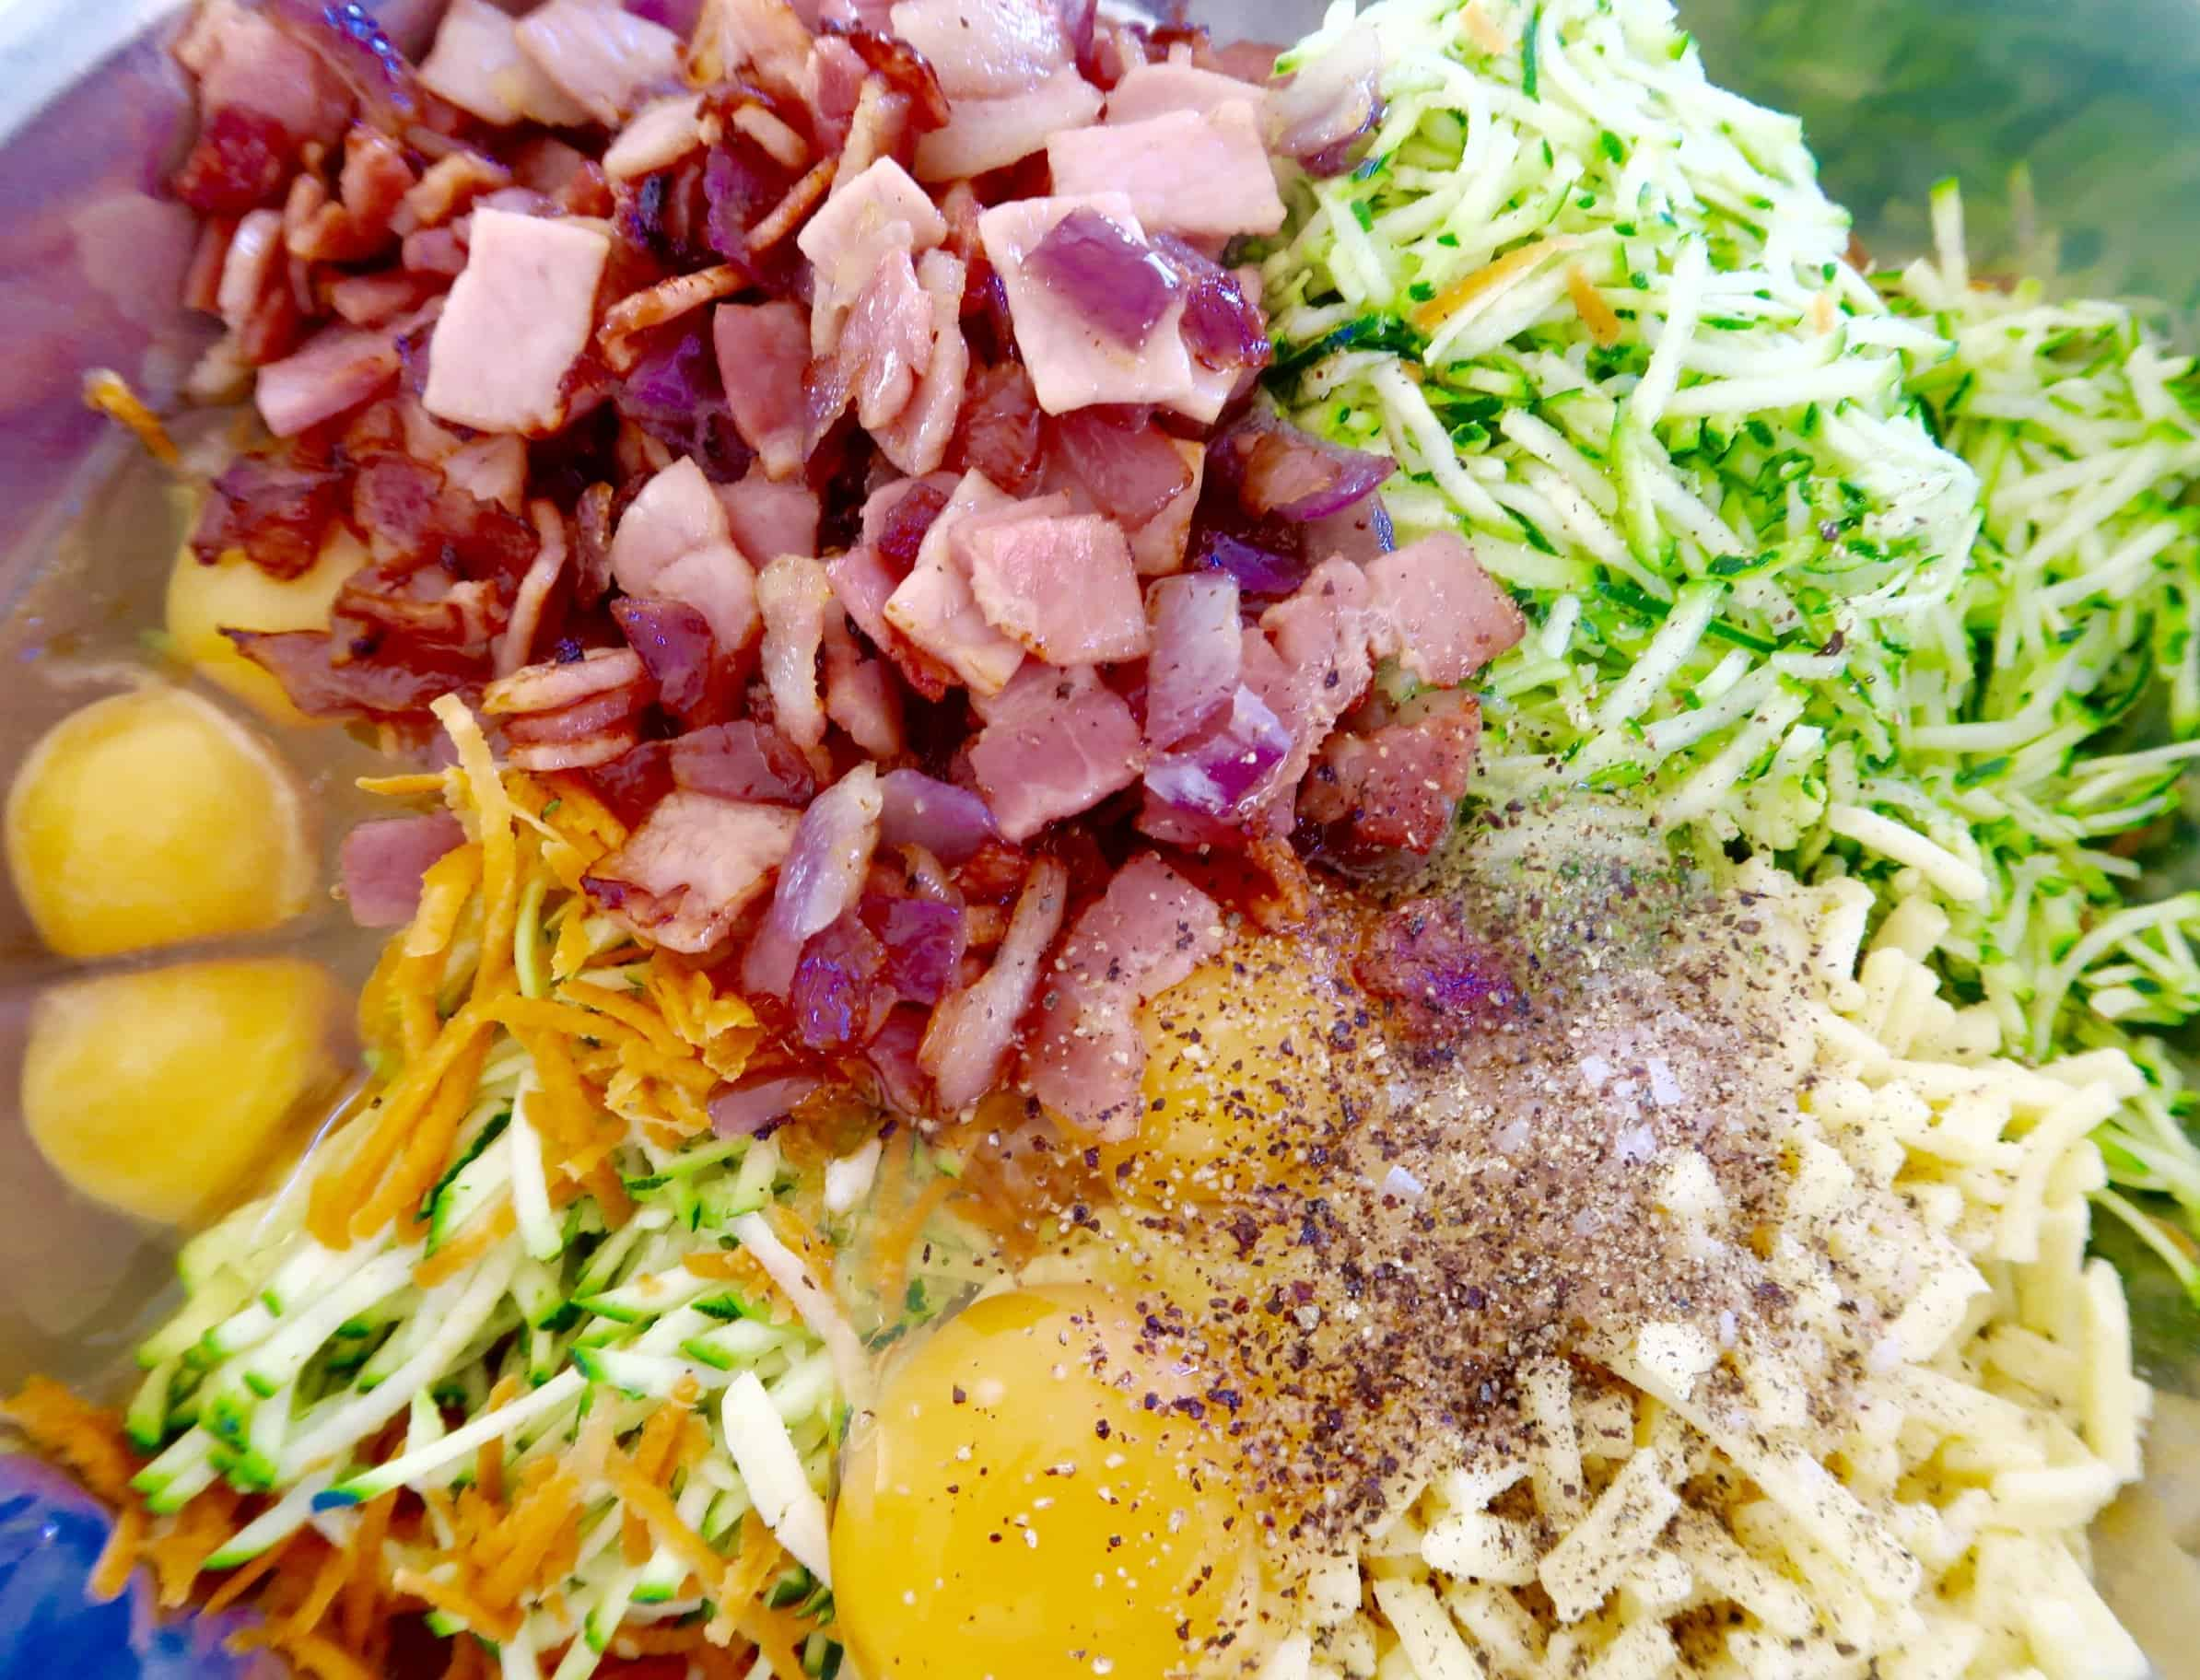 zucchini and bacon slice ingredients in a bowl ready to mix